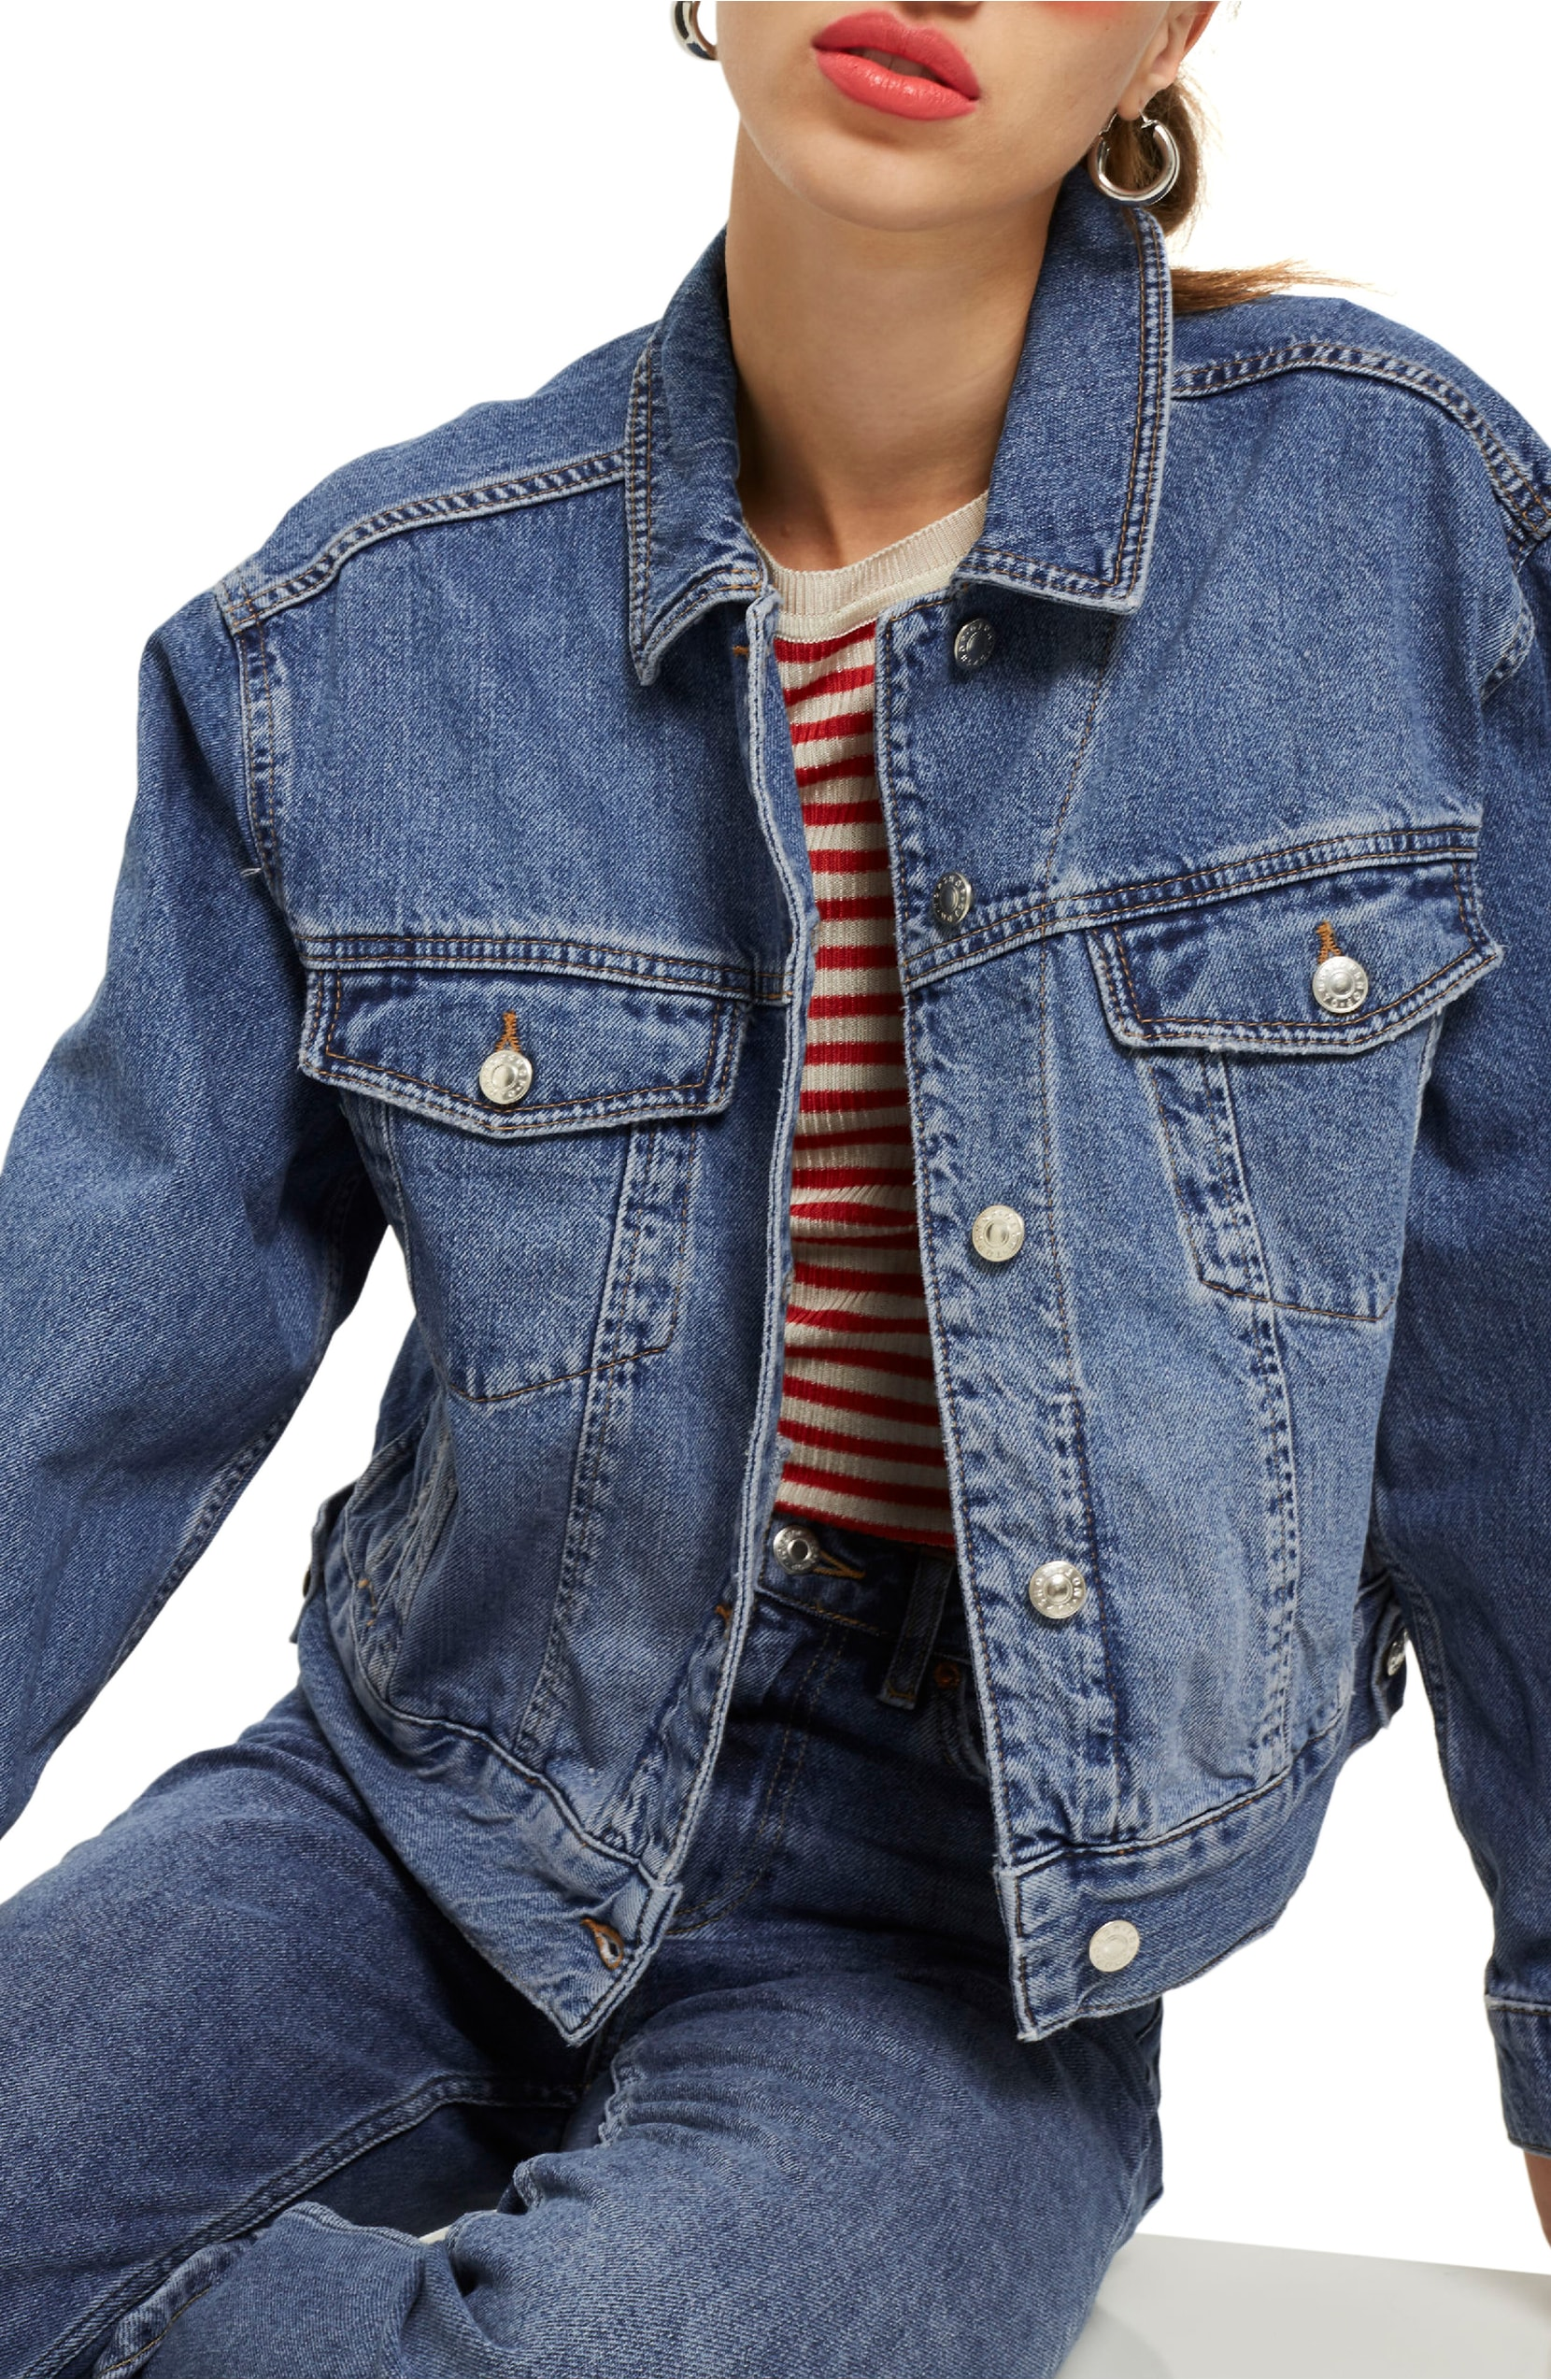 Boxy Crop Denim Jacket. Sale:$56.90 / After Sale:$85.00. (Image: Nordstrom)